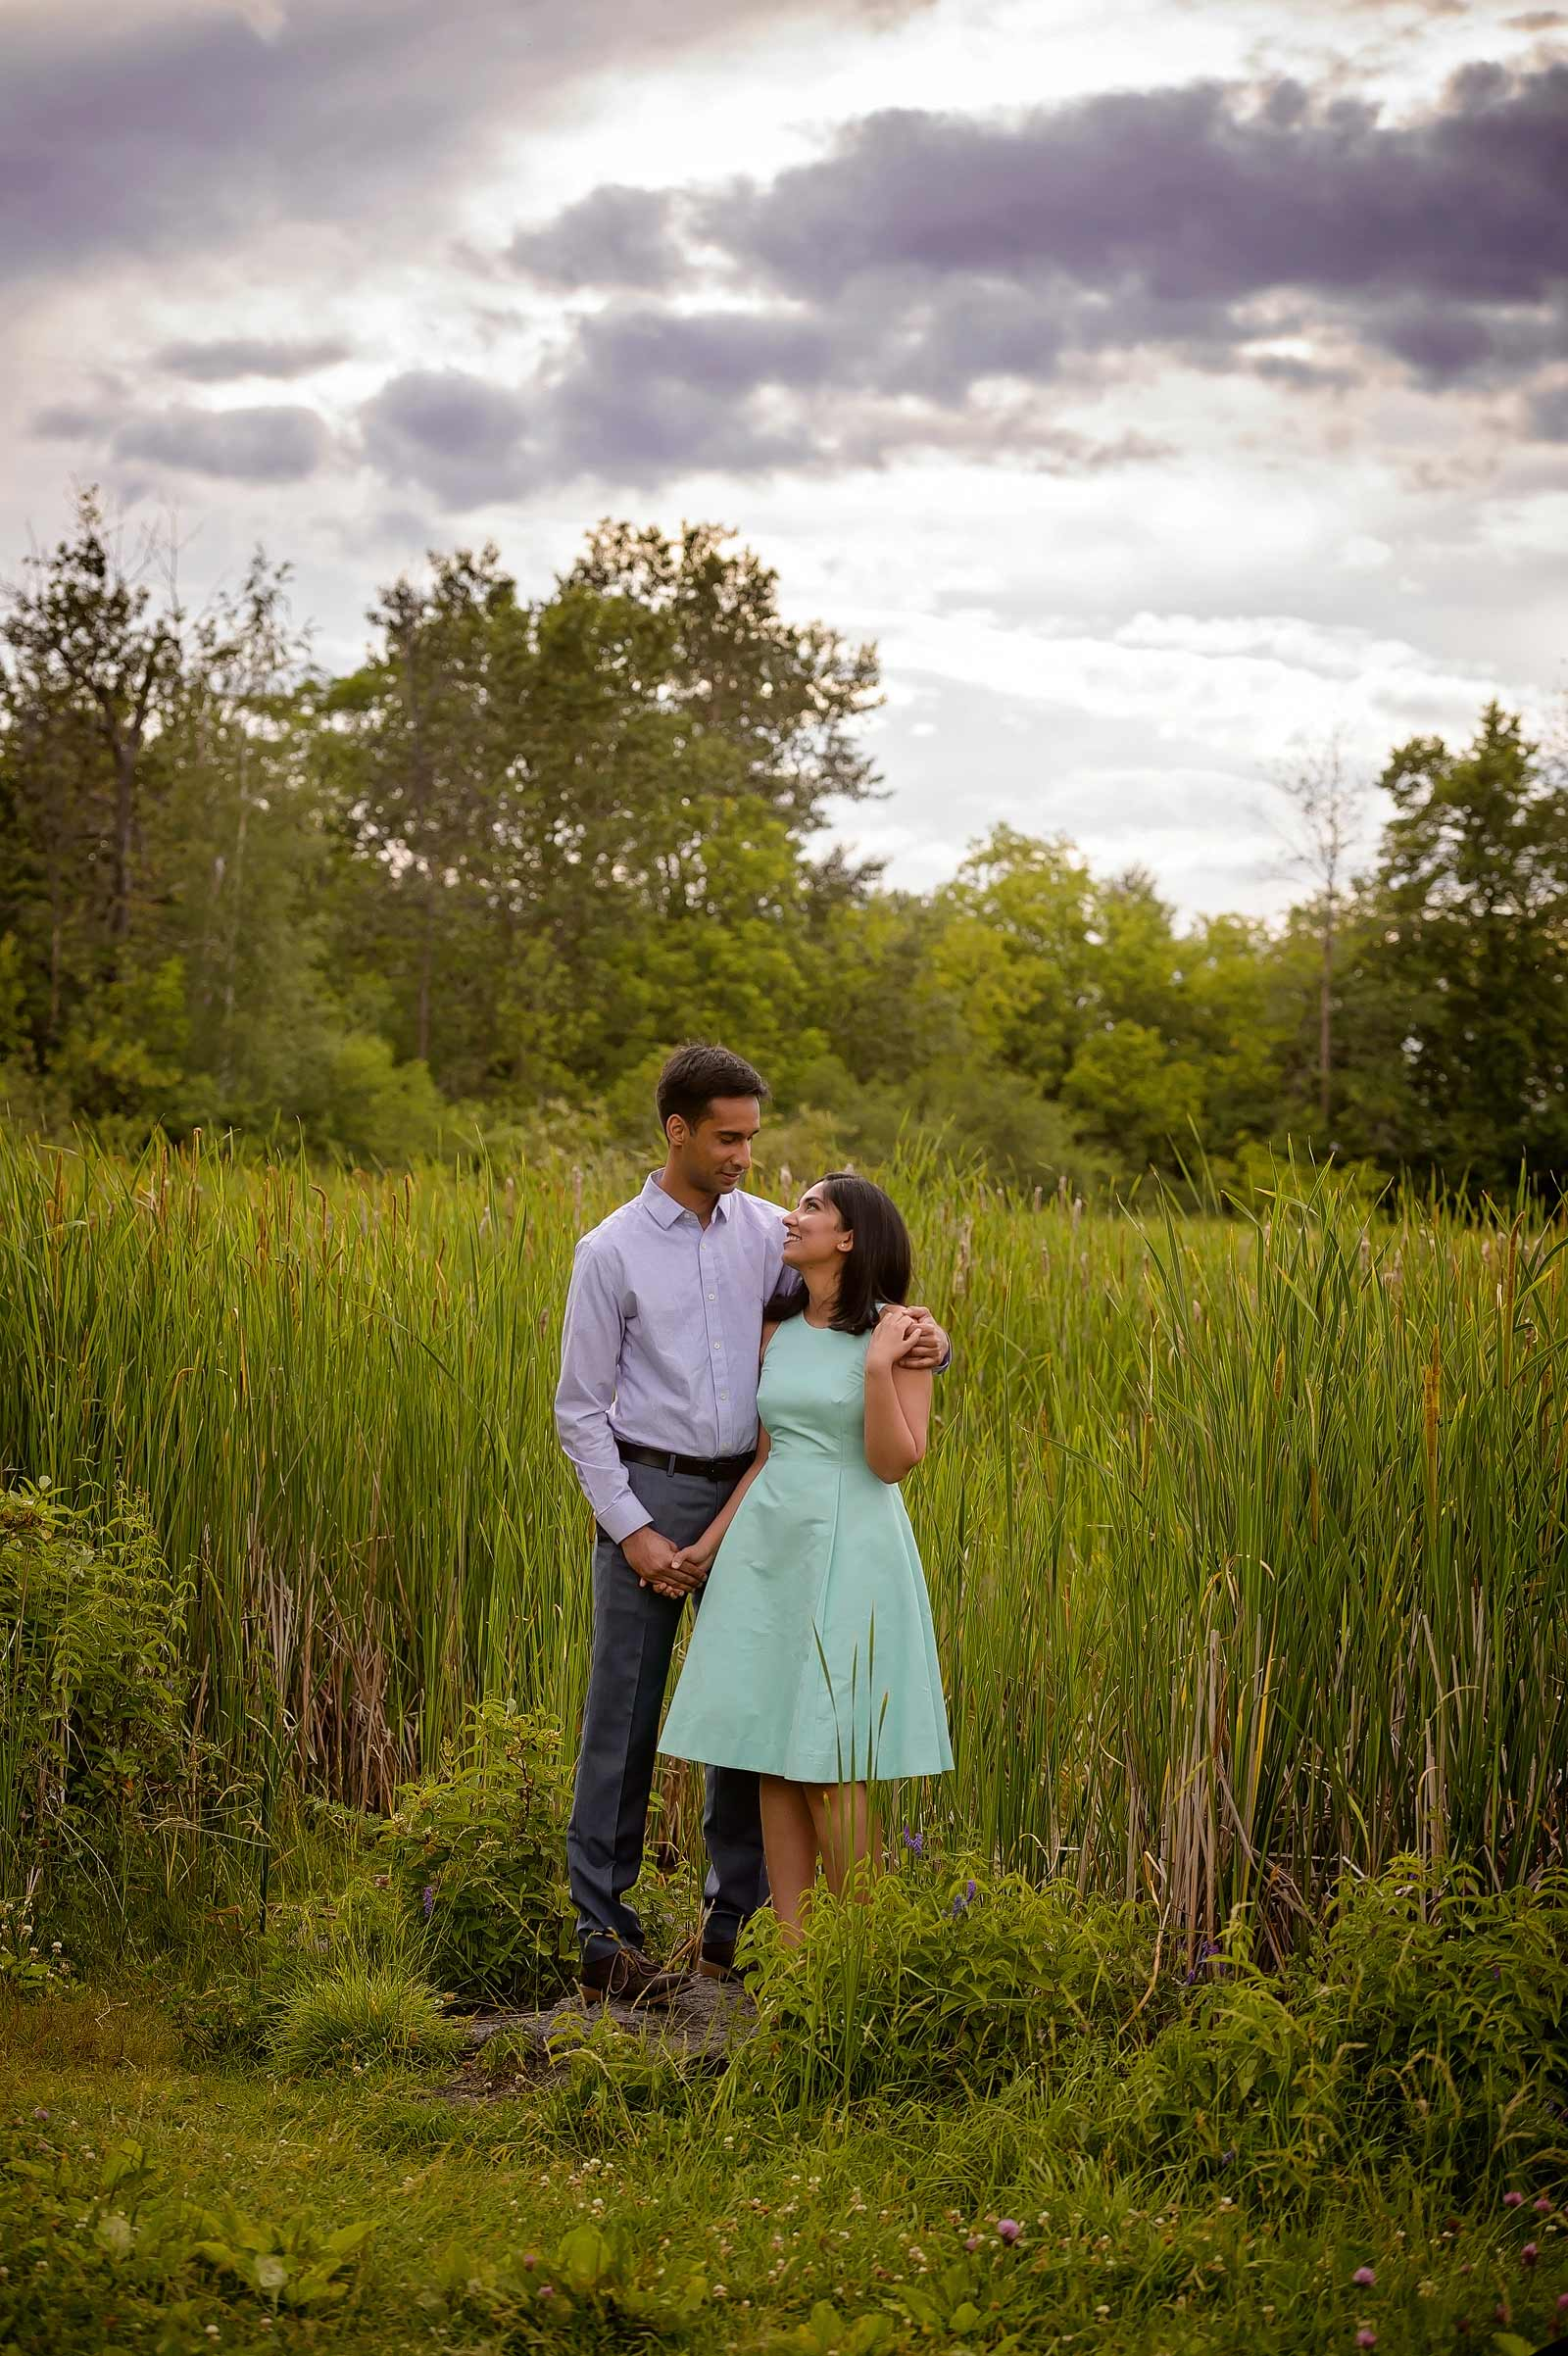 Reeds and beautiful skies with a couple at dow's lake in Ottawa